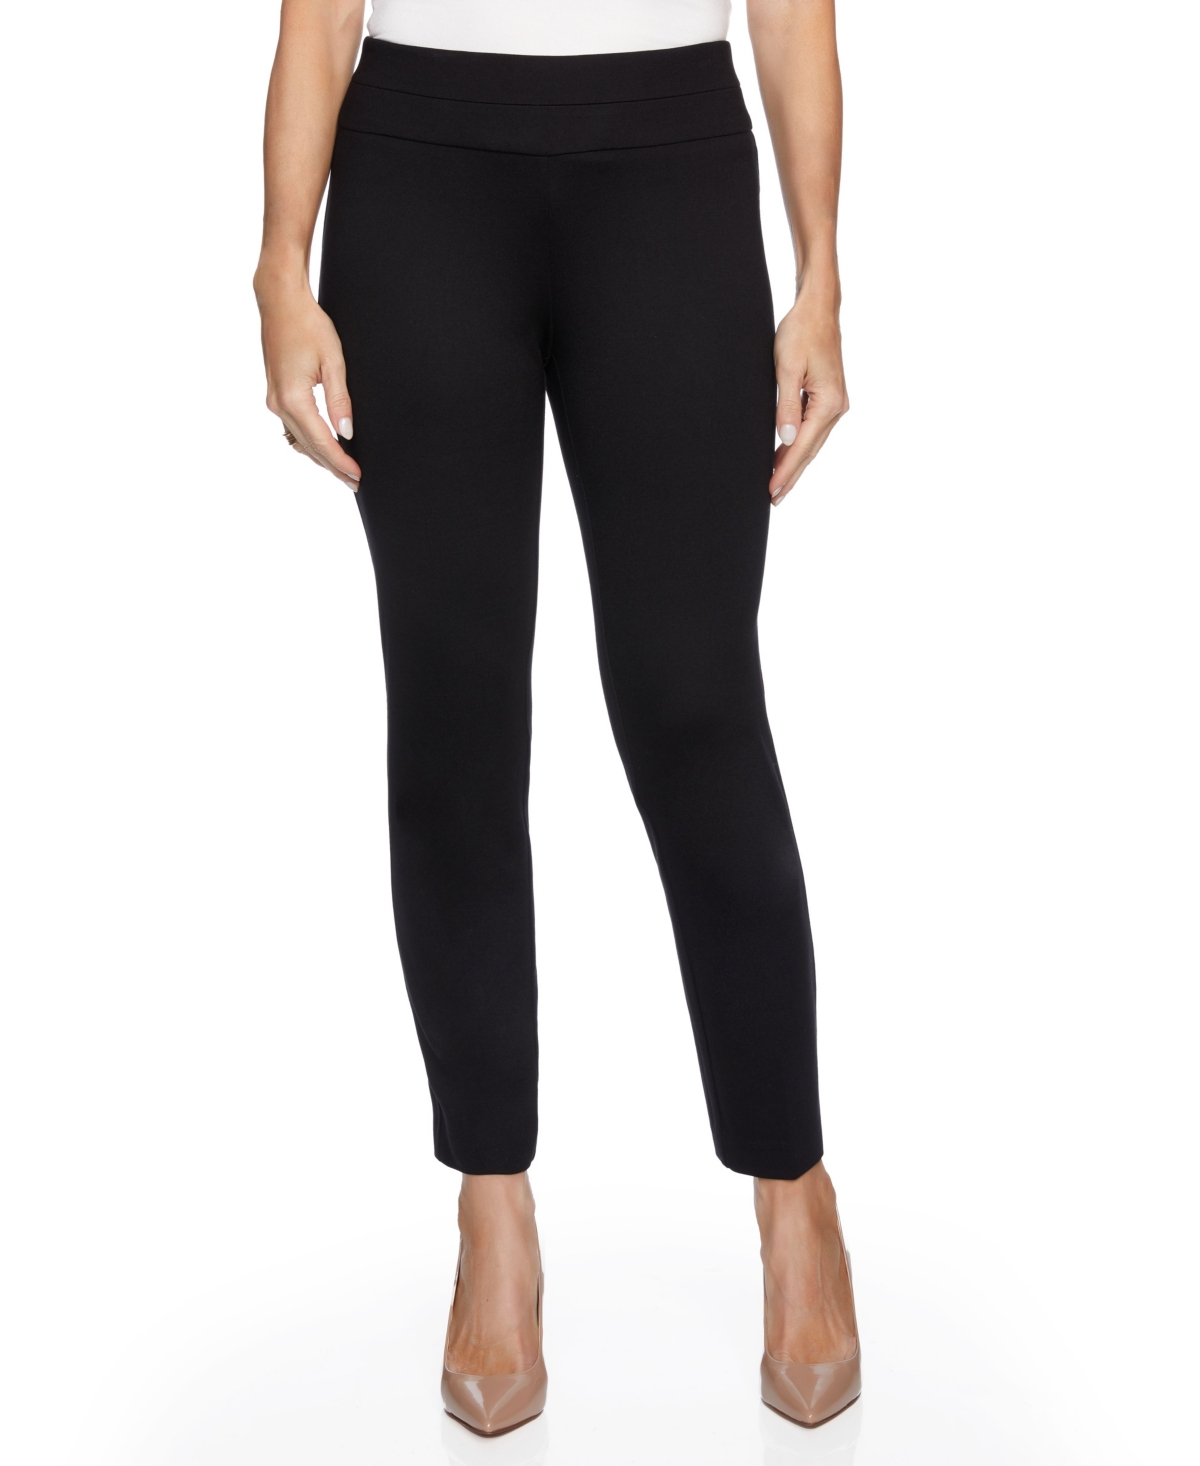 Women's Slim Ponte with Wide Waistband Pants